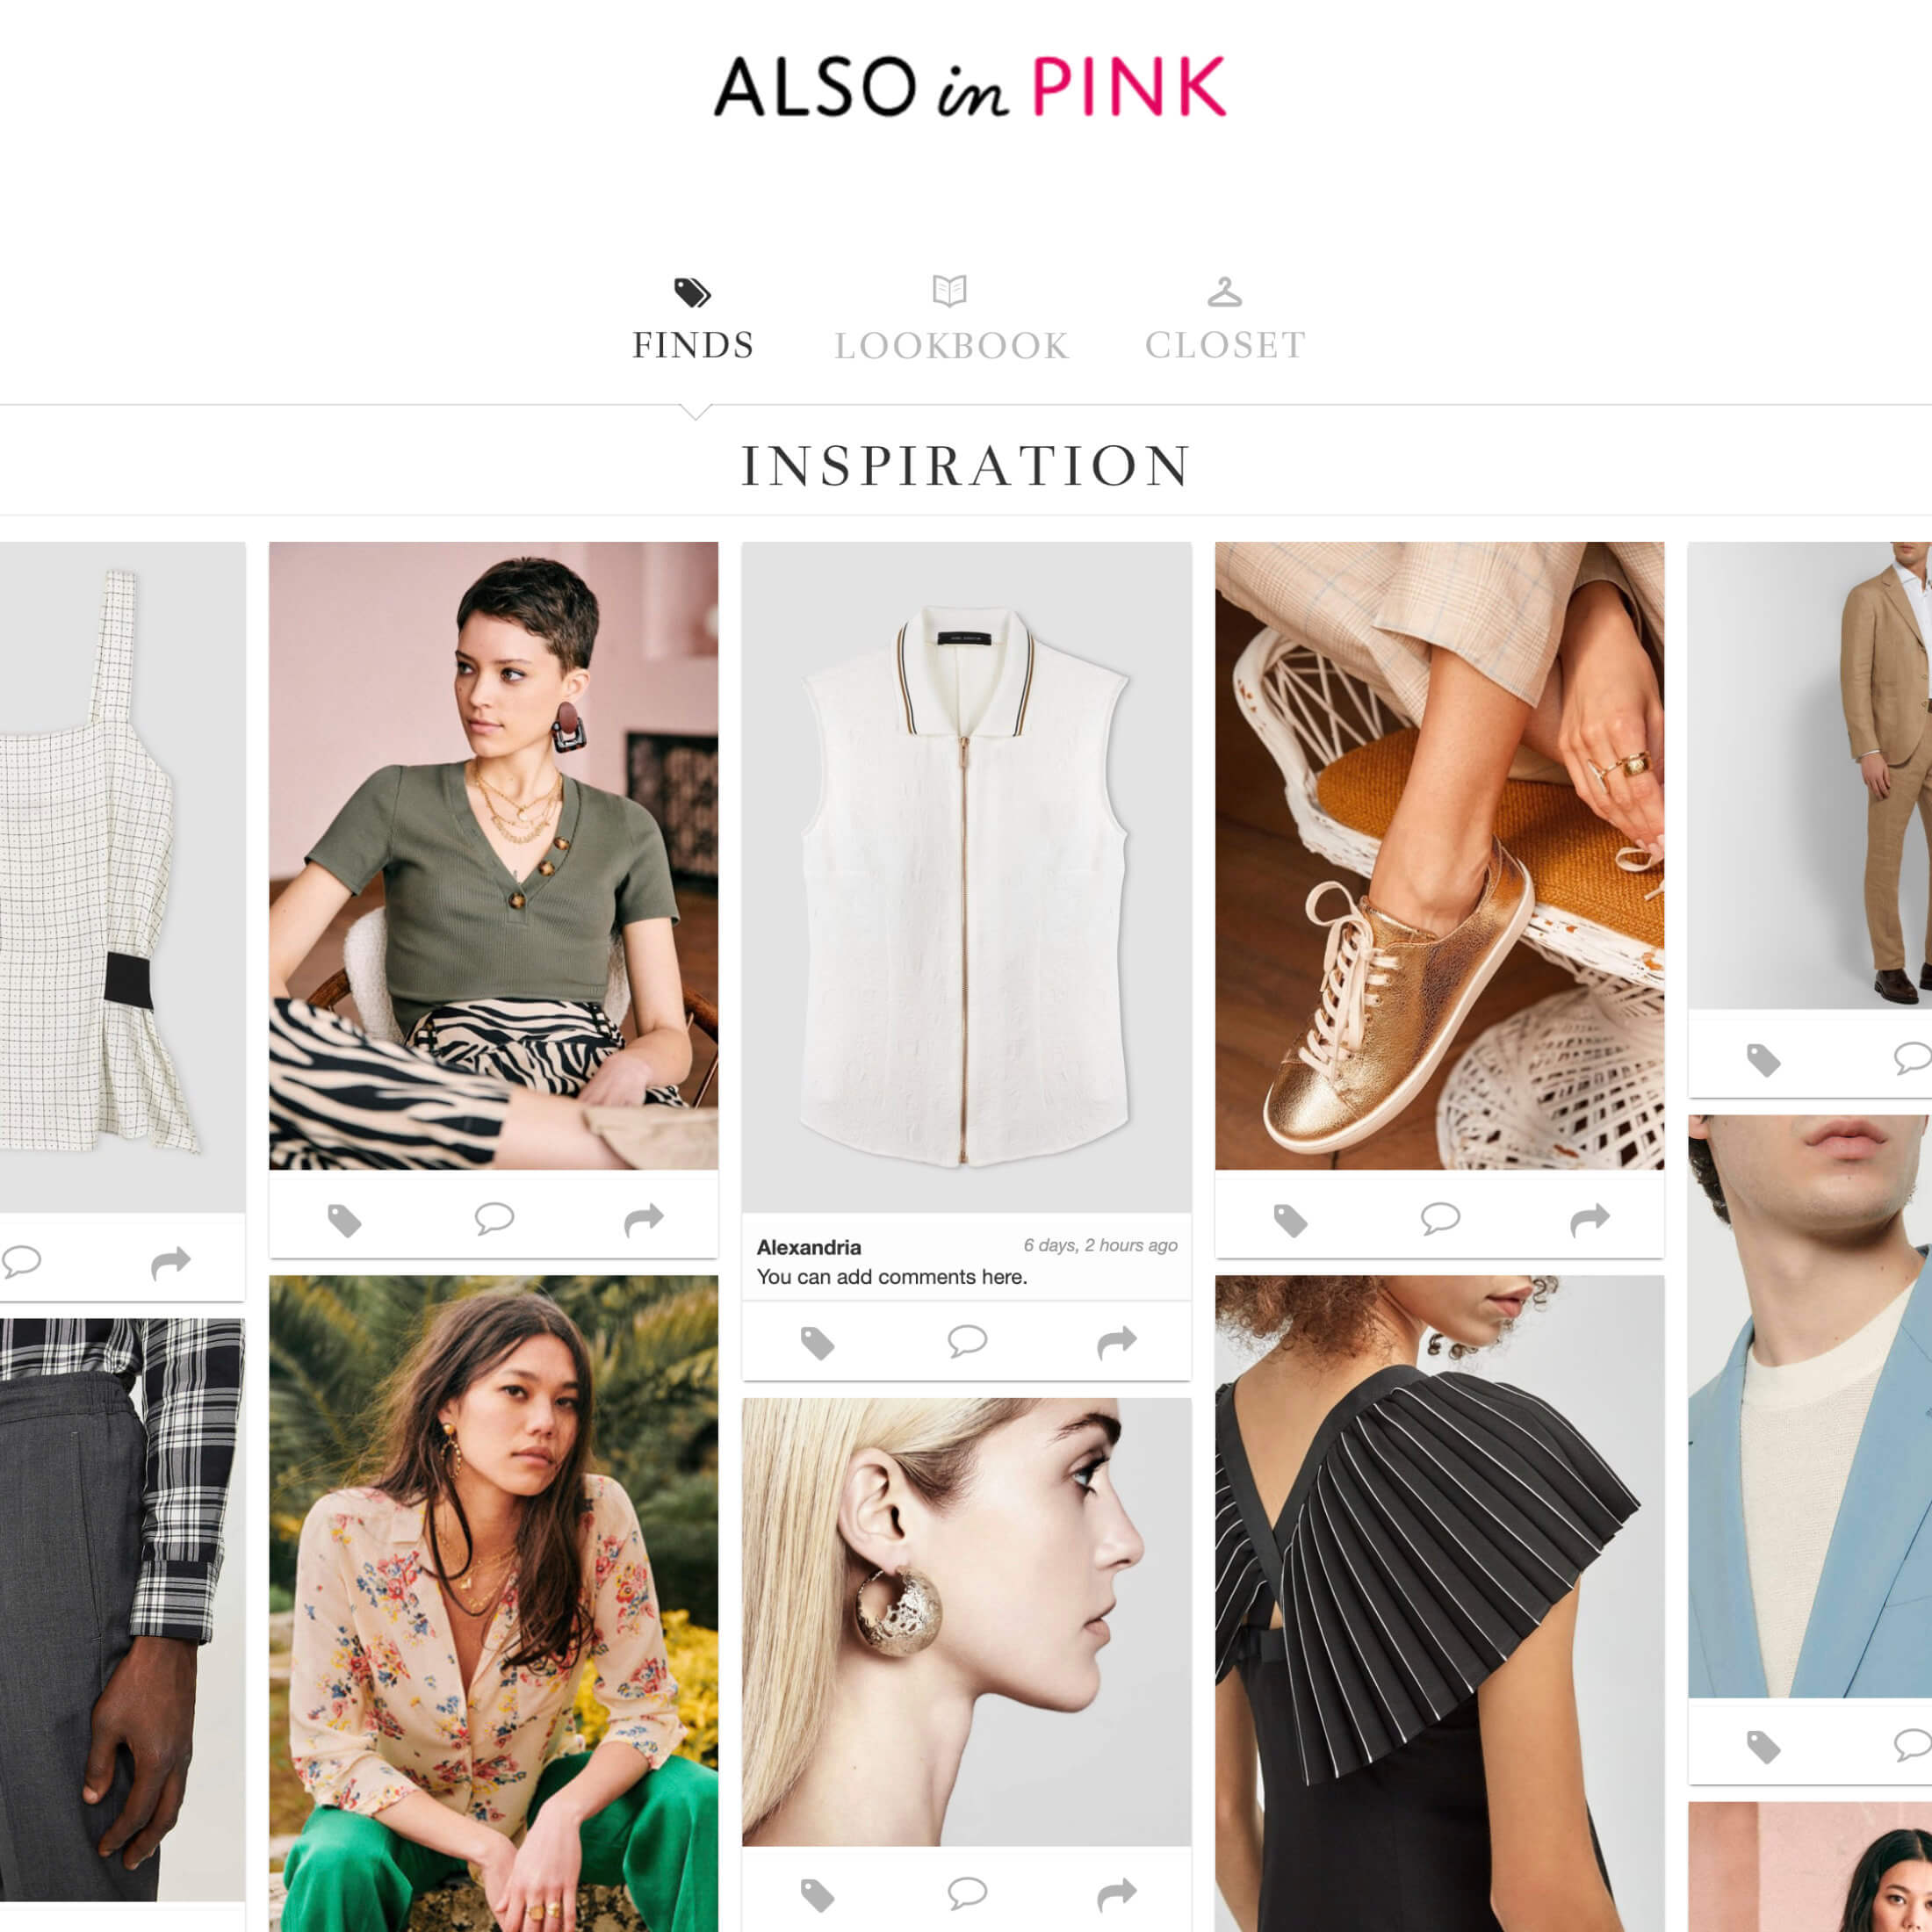 Clothing To Demonstrate The Key Features Of ALSO in PINK's Virtual Wardrobe Personal Styling Subscription Service